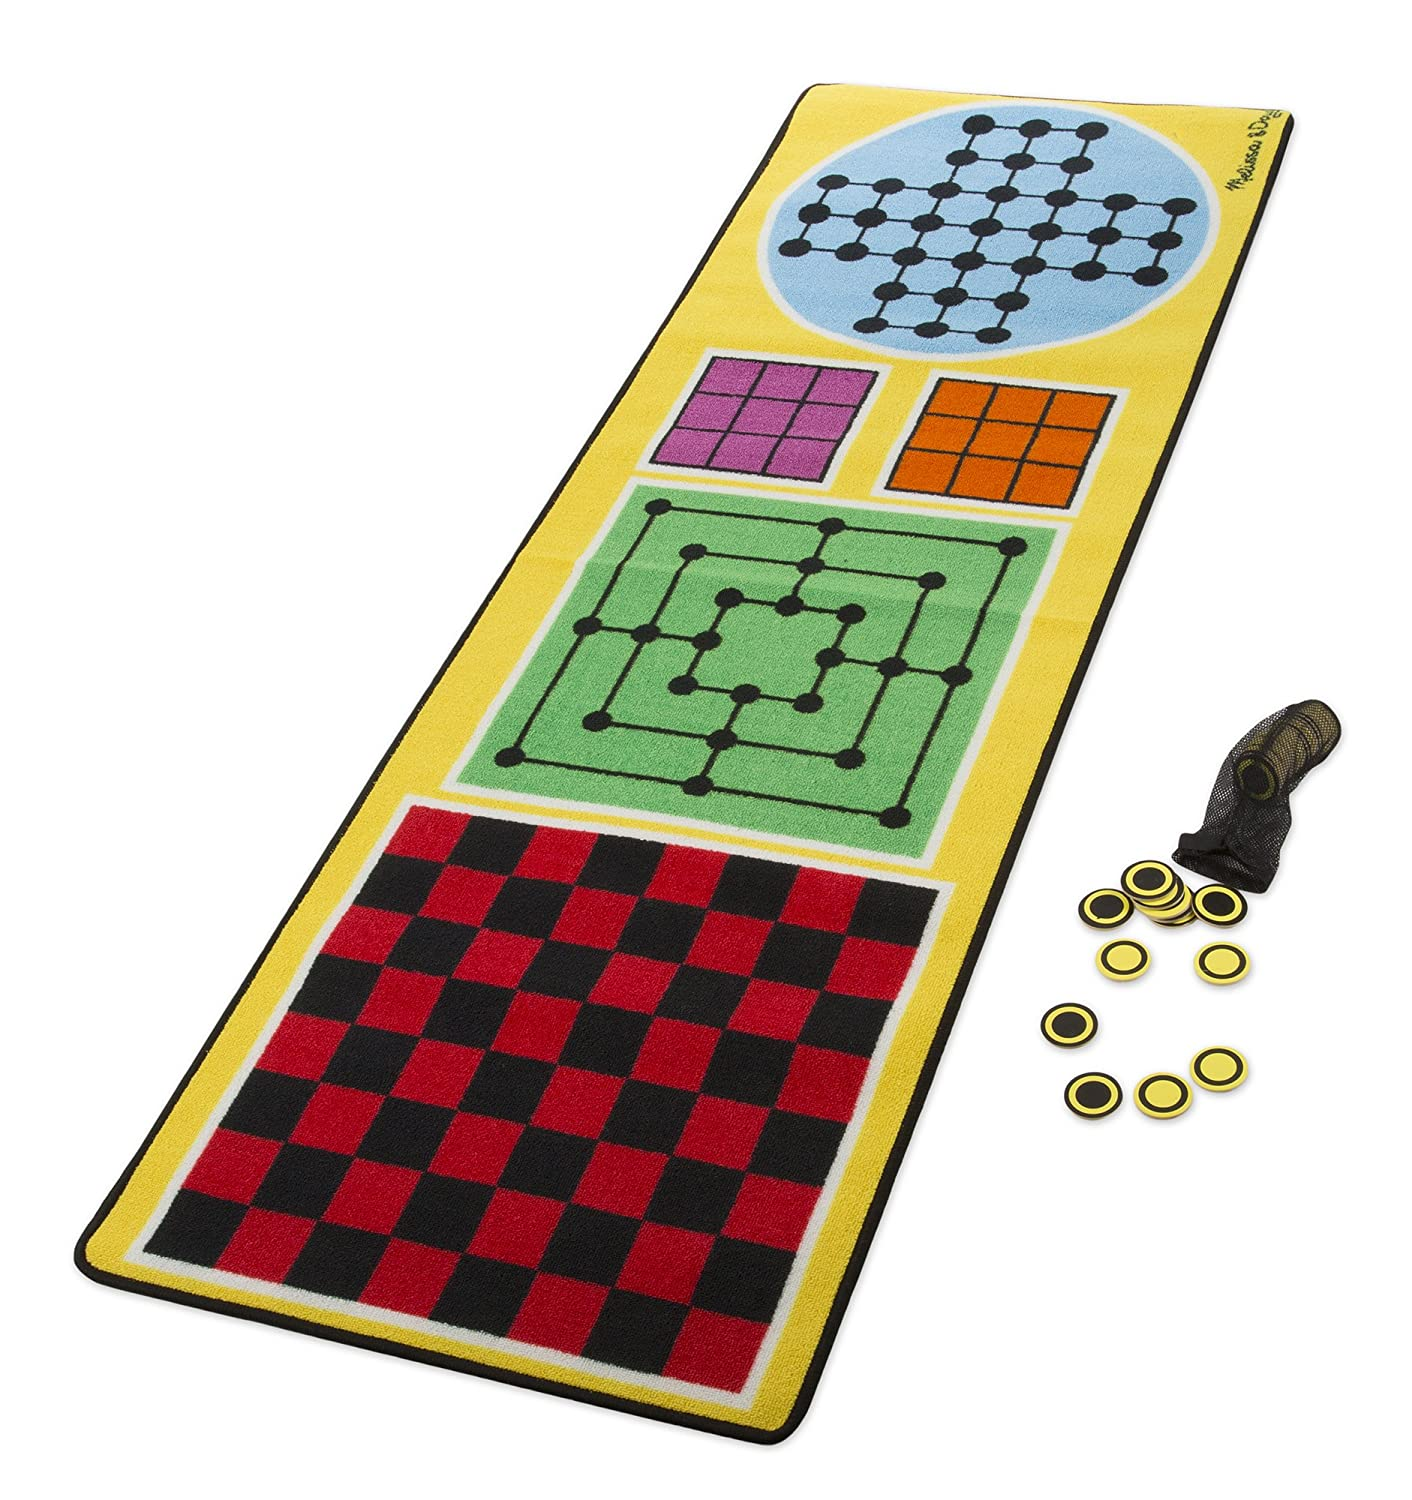 Amazon.com: Melissa & Doug 4-in-1 Game Rug (78.5 x 26.5 inches) - 4 Board  Games, 36 Game Pieces: Toys & Games